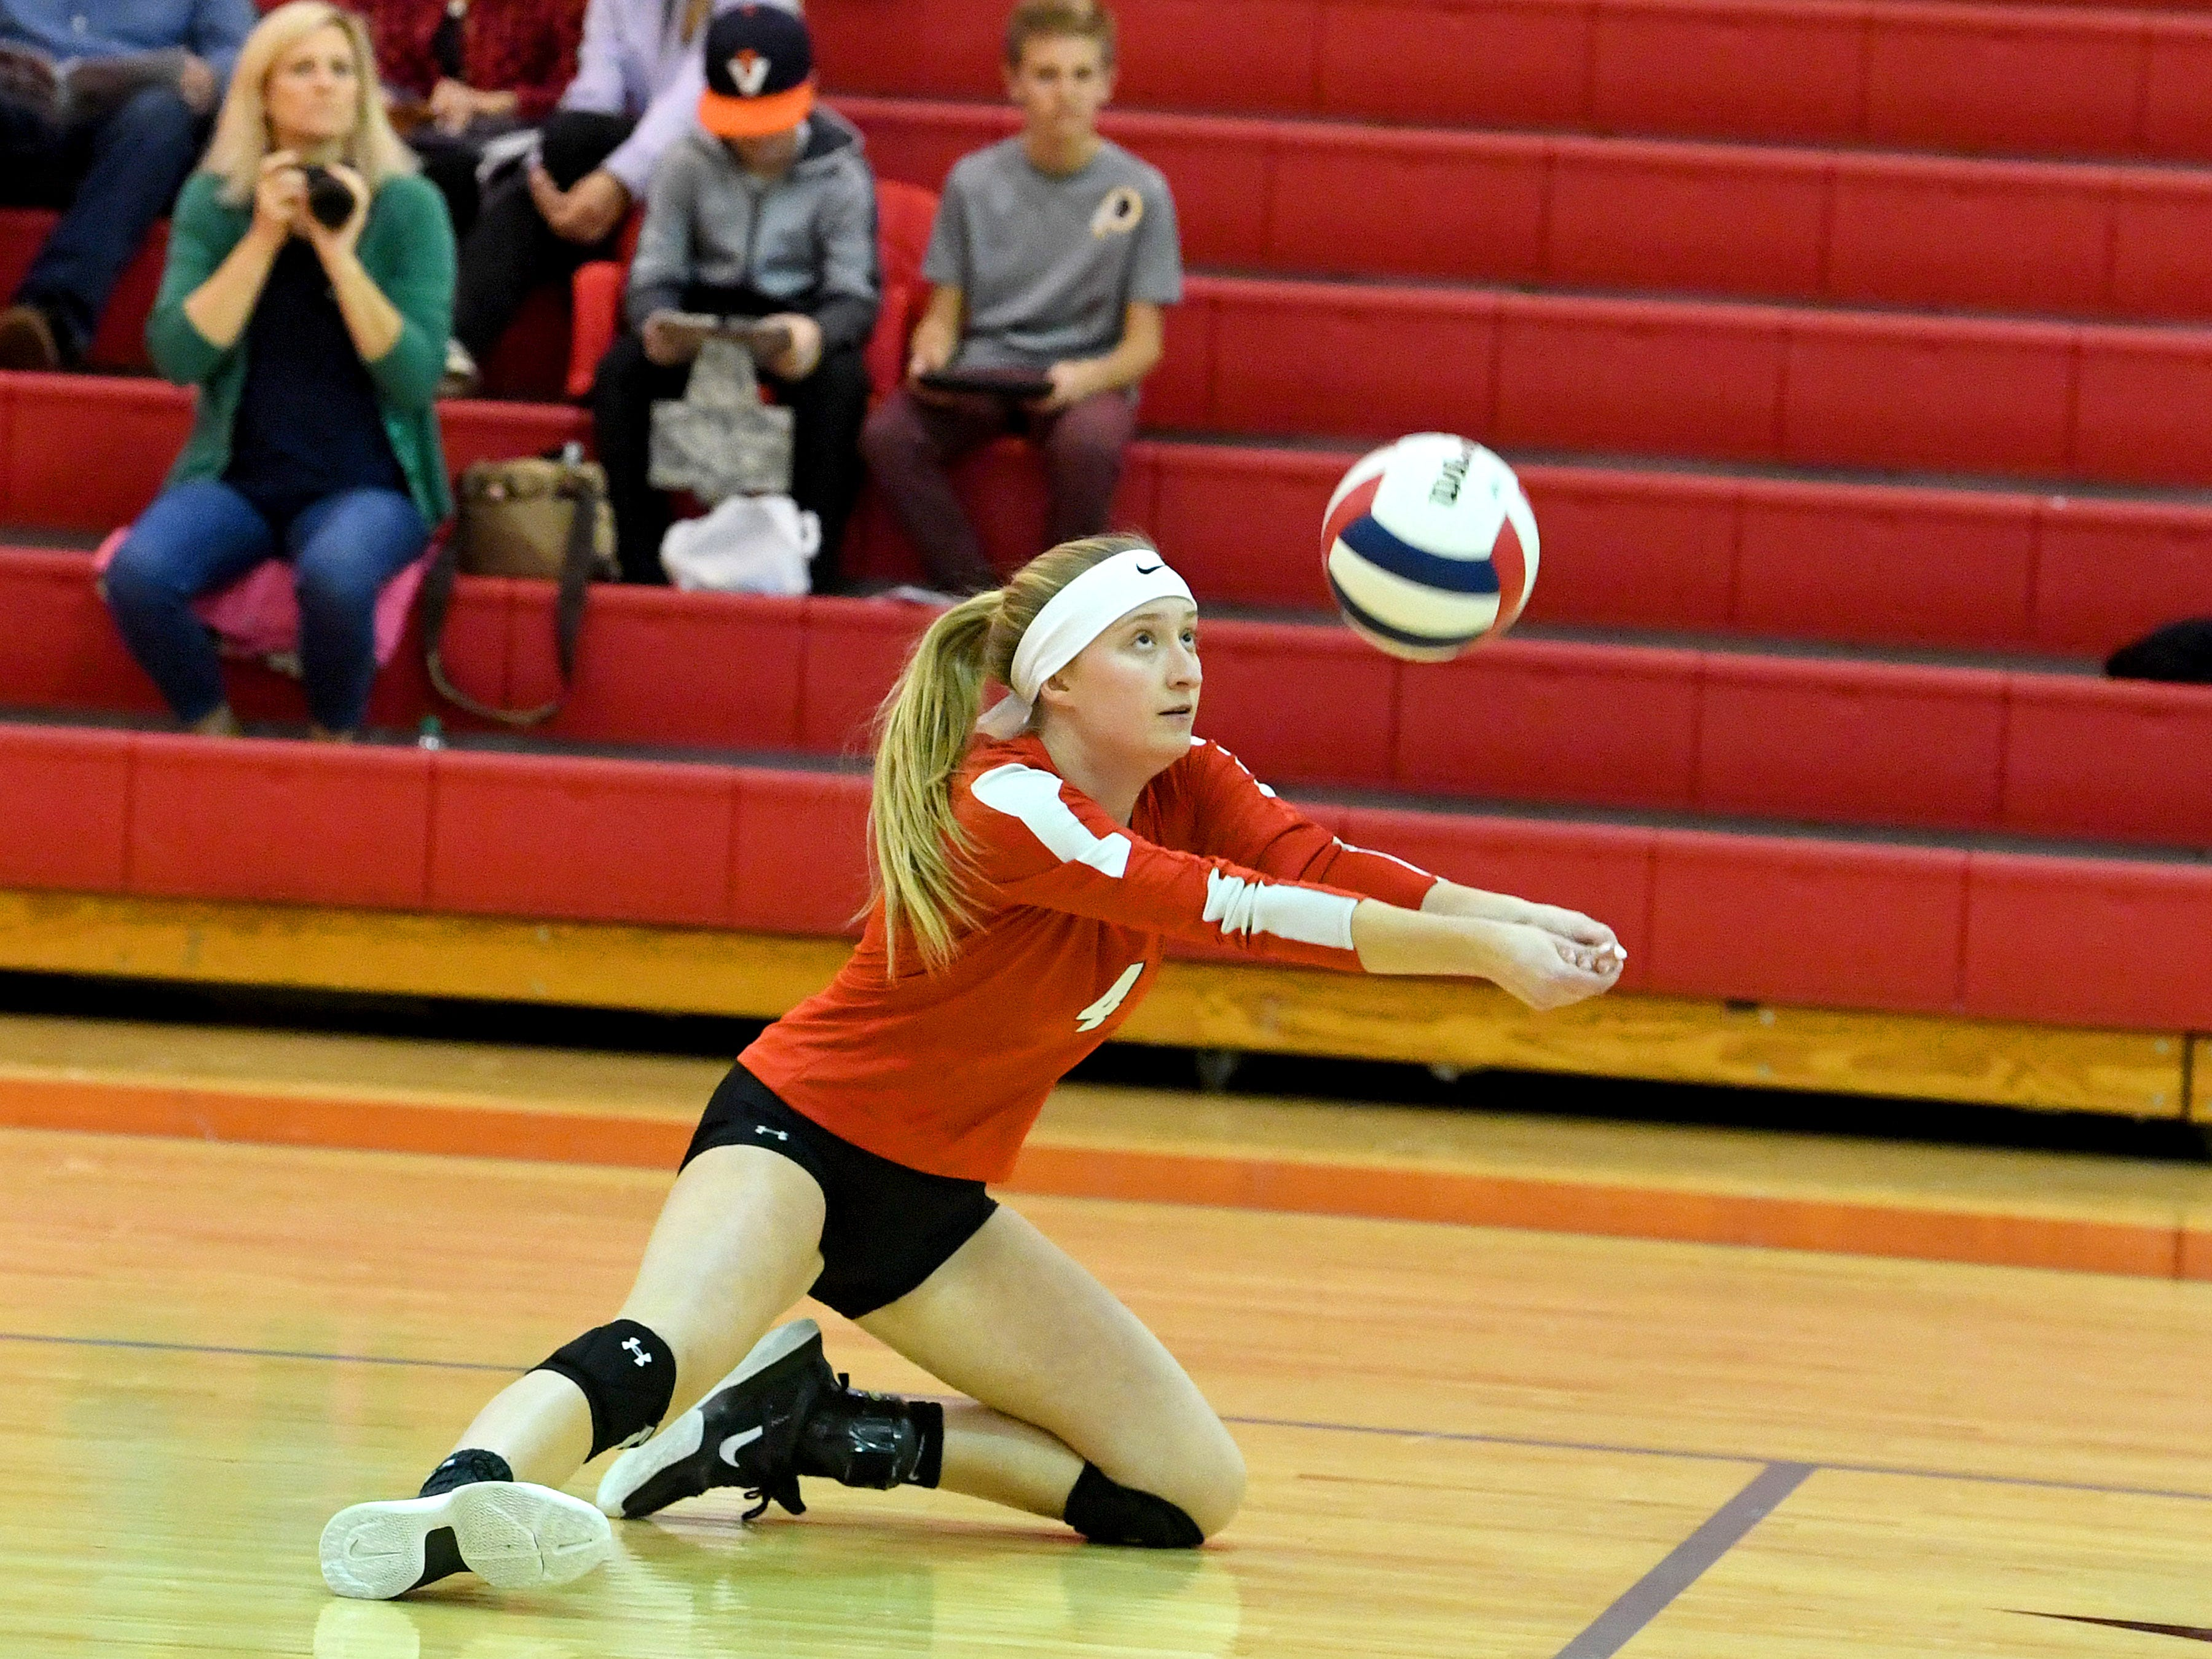 Riverheads' Emma Tomlinson drops to the side and down on a knee to bump the ball during a Region 1B quarterfinal match, played in Greenville on Thursday, Nov. 1, 2018.